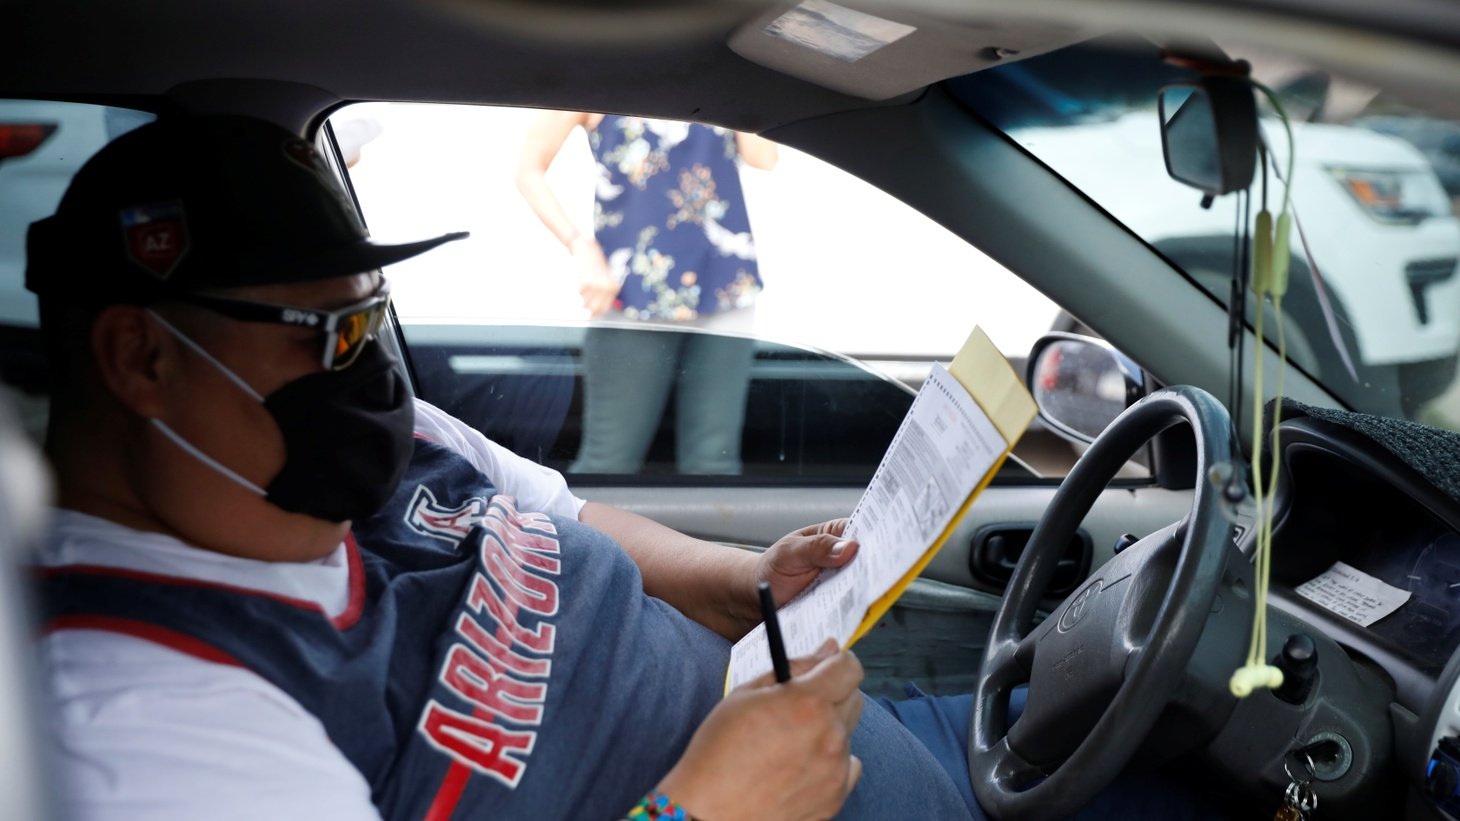 An Arizona resident casts his ballot from his car outside an election polling station in South Tucson, Arizona, U.S., November 3, 2020.